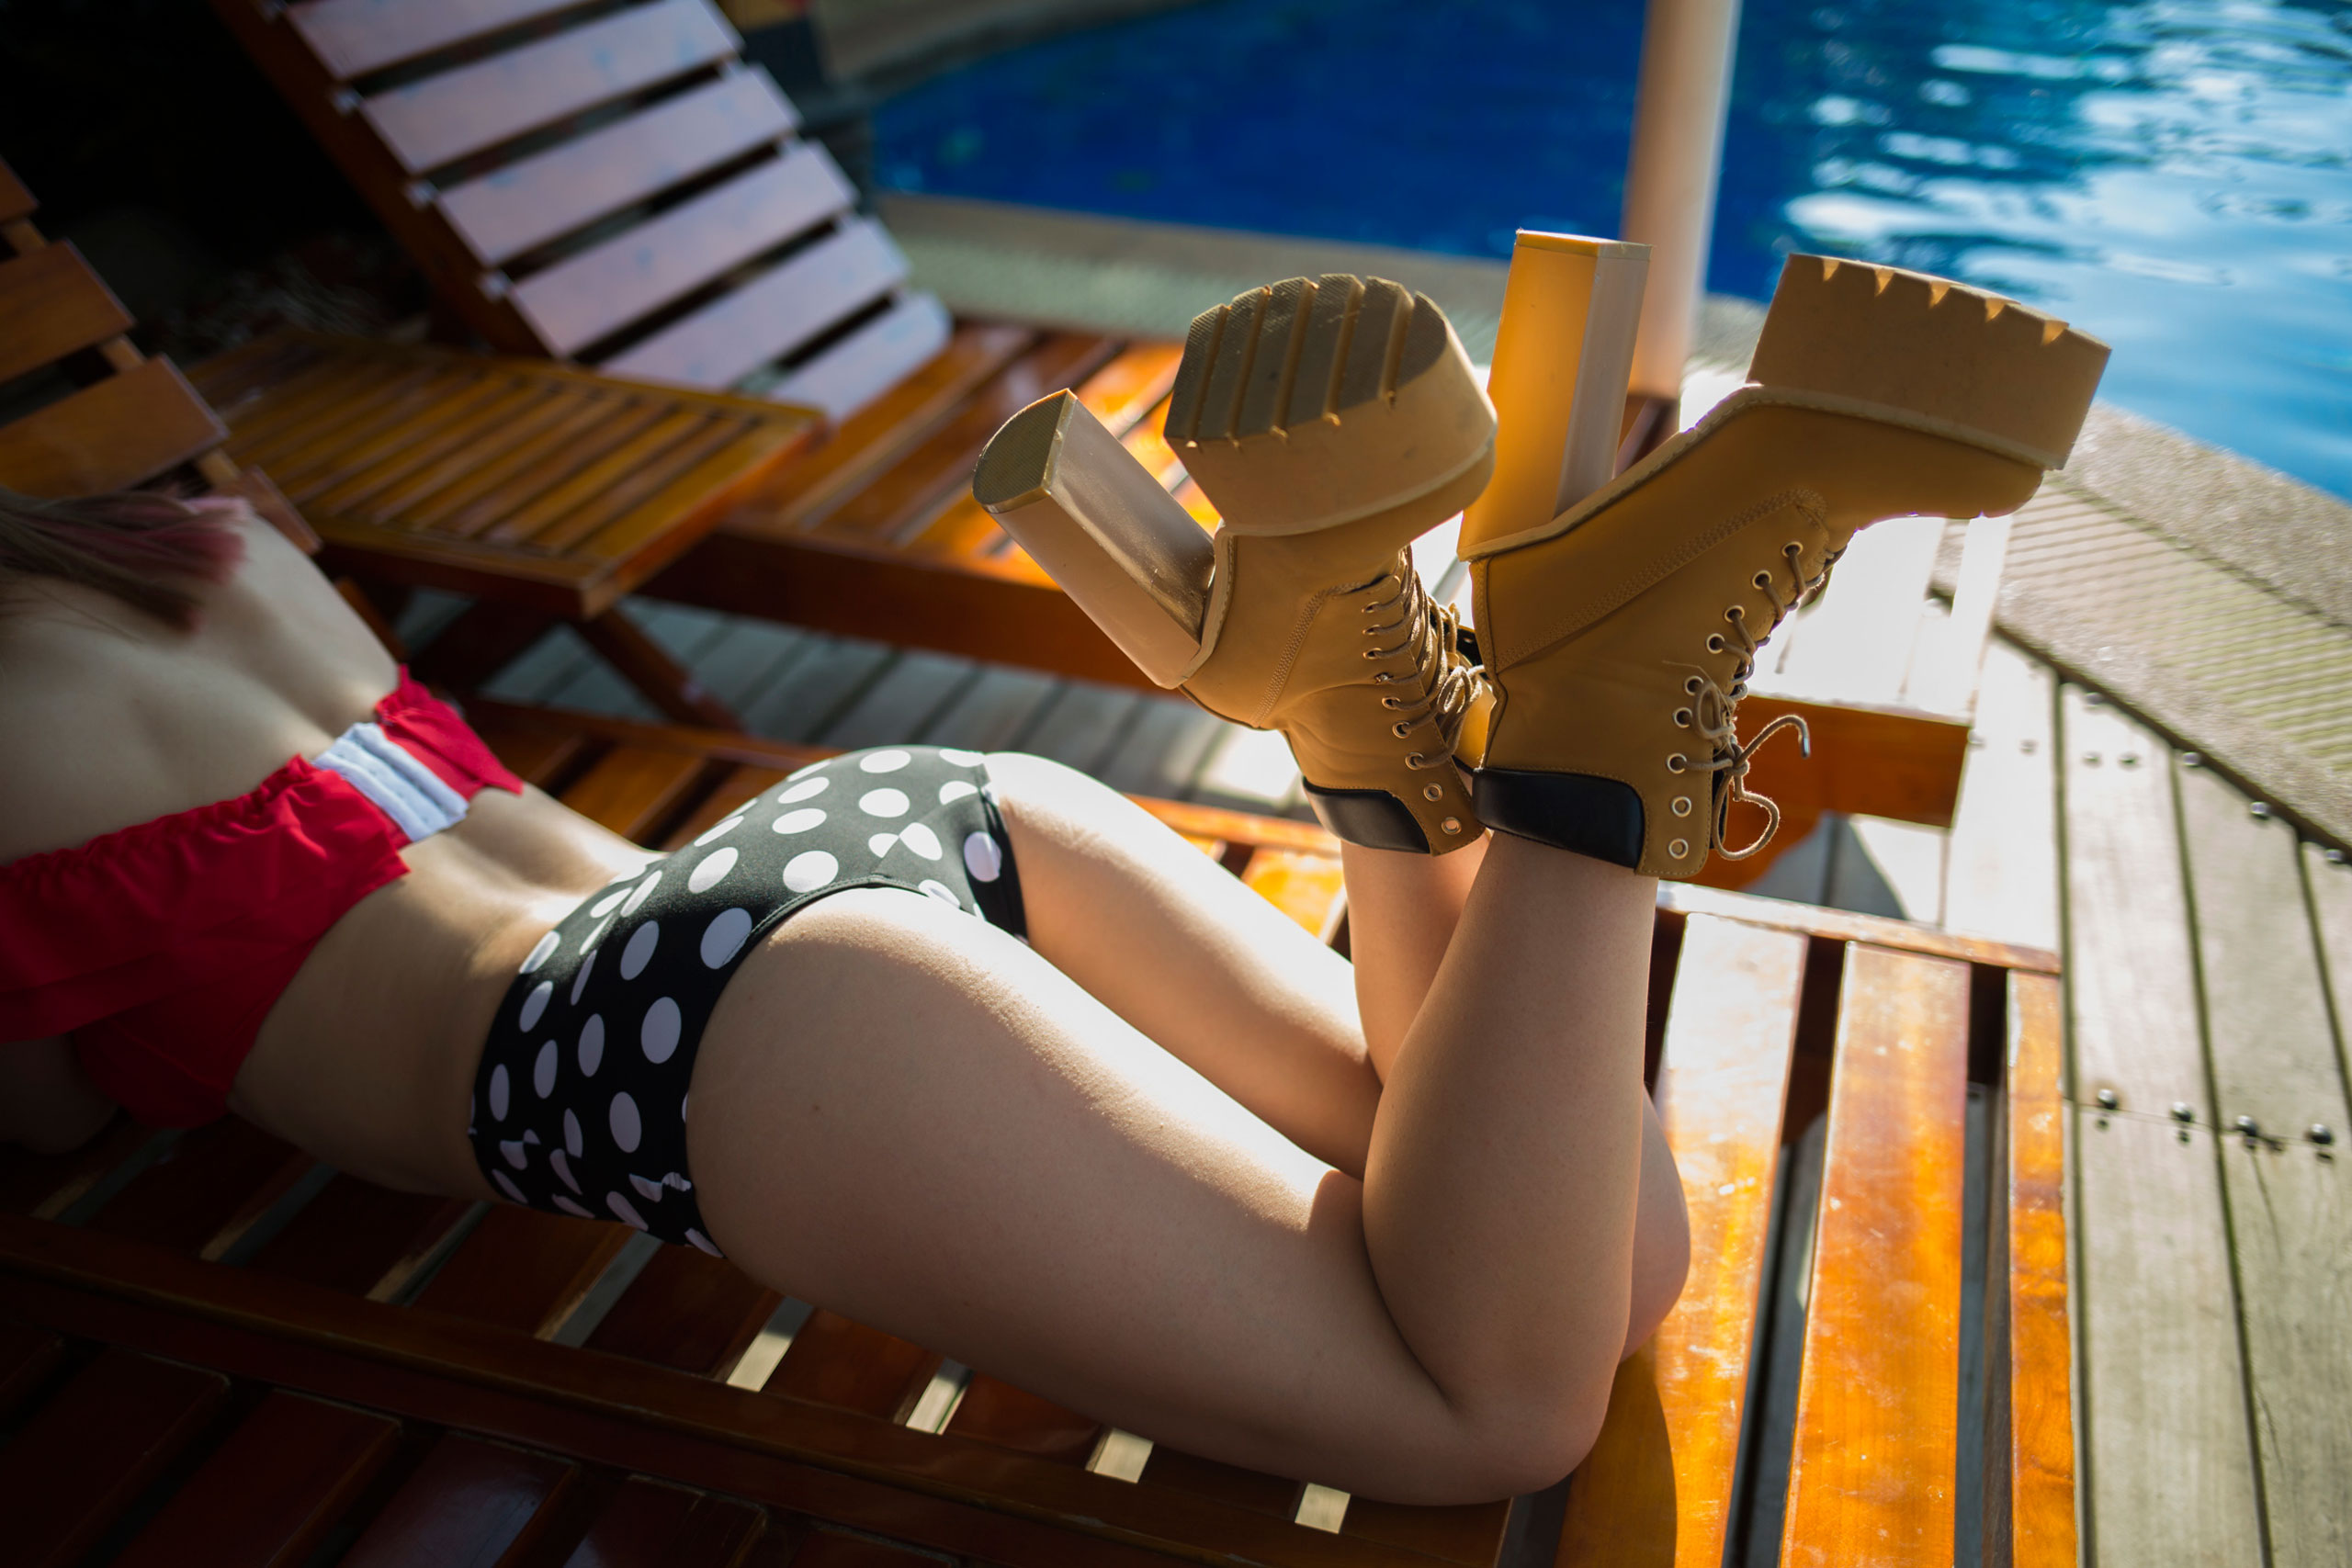 Fangzhou, a member of Dangsters, takes a break during a commercial video shoot at poolside, March 13, 2015.